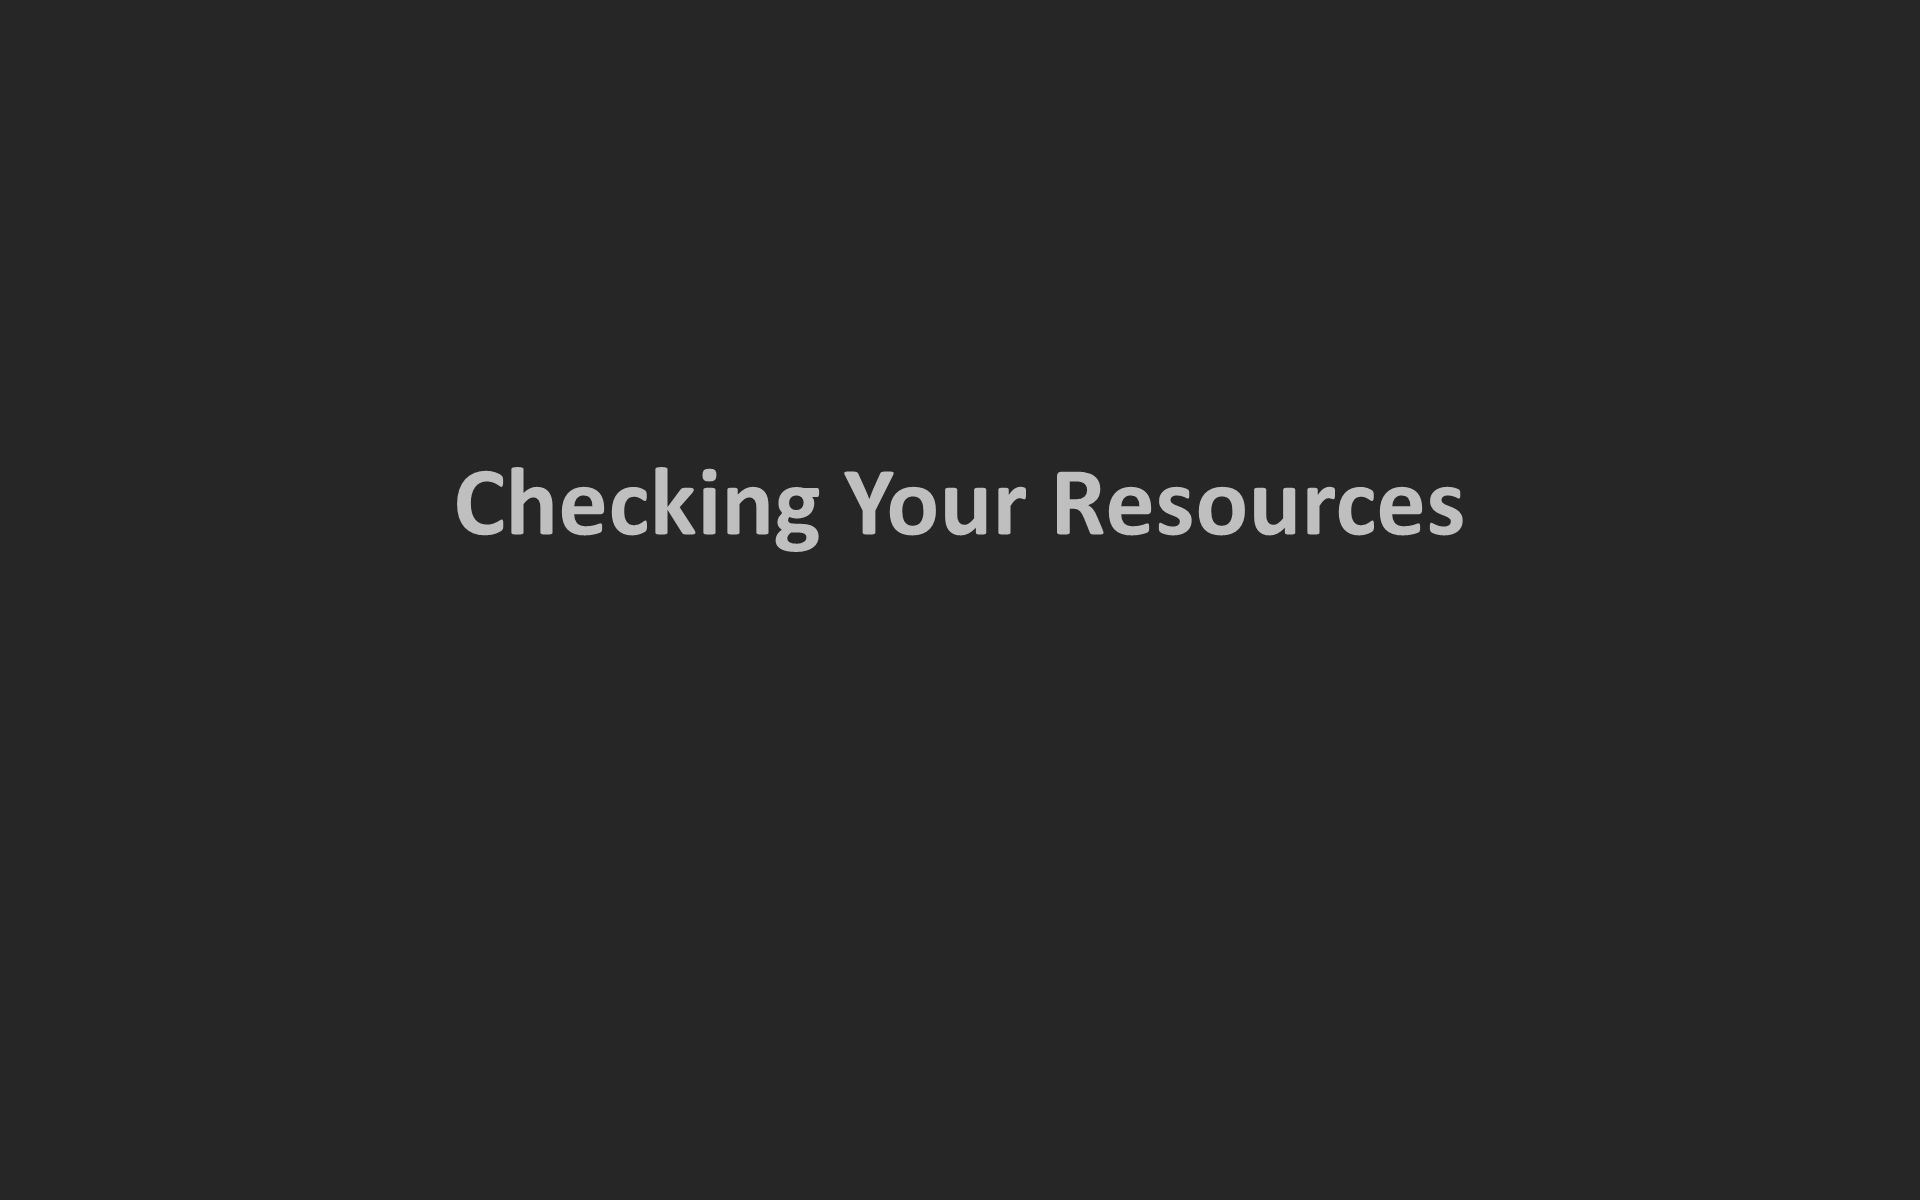 Checking Your Resources